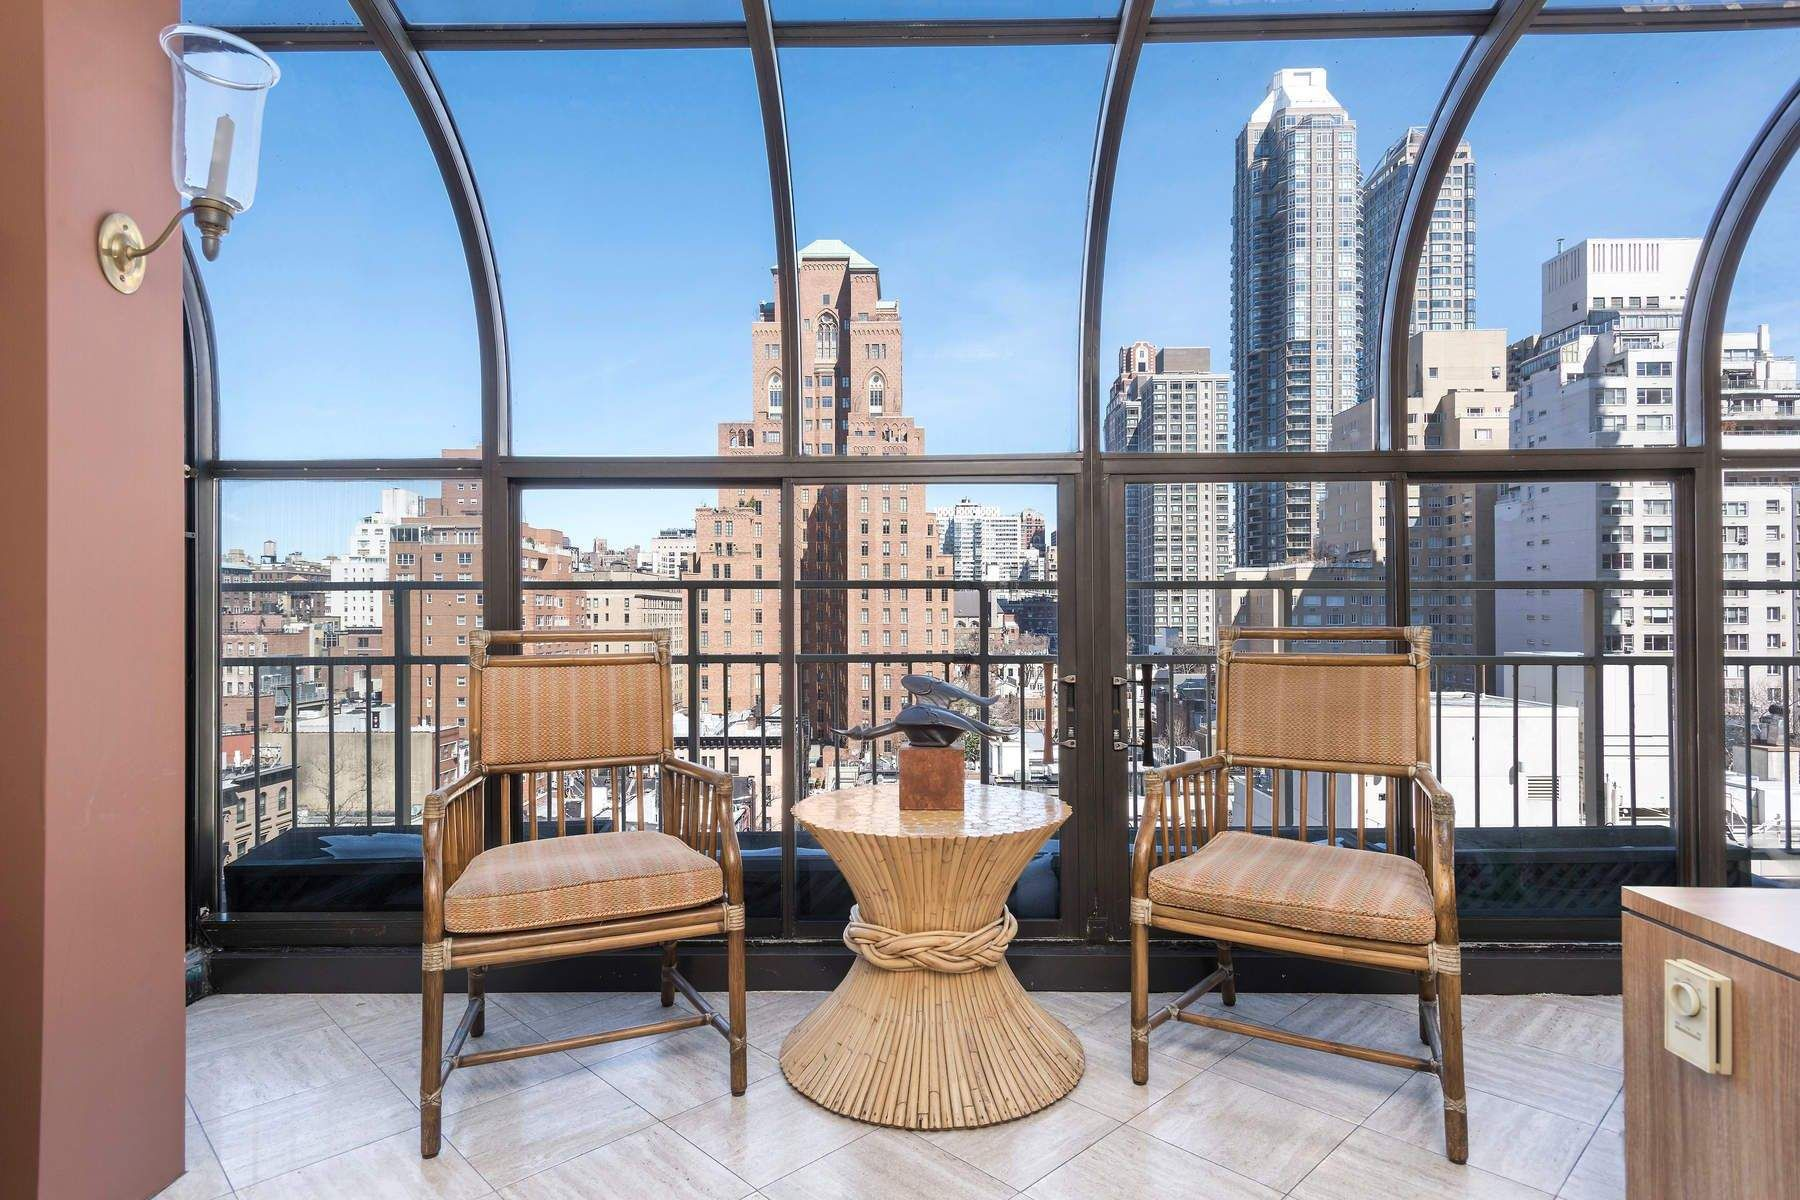 Co-op for Sale at Great Opportunity 150 East 61st Street Apt 12G, Upper East Side, New York, New York, 10065 United States